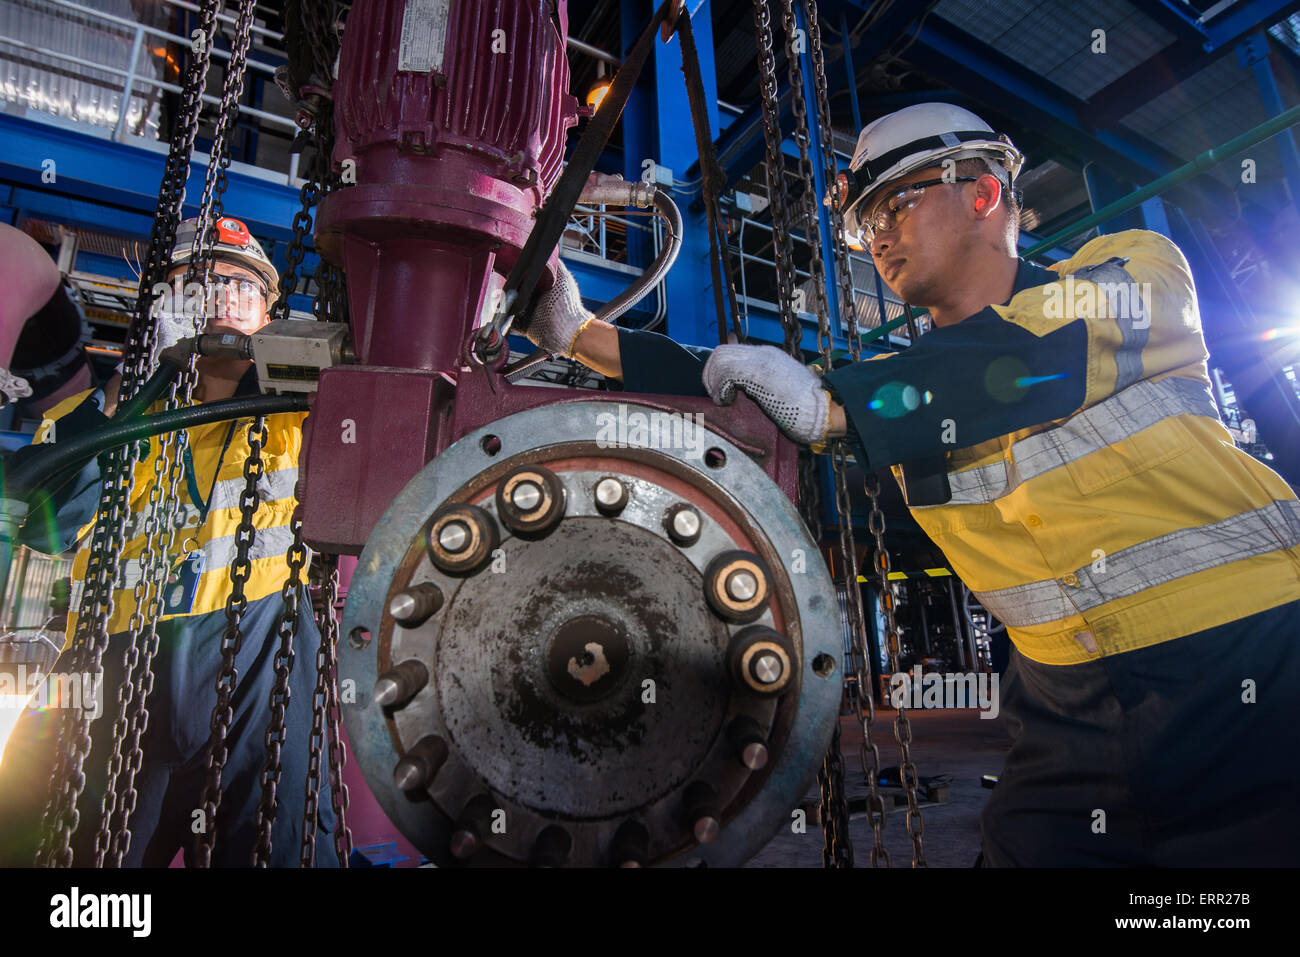 Workers doing maintenance work at power plant. - Stock Image